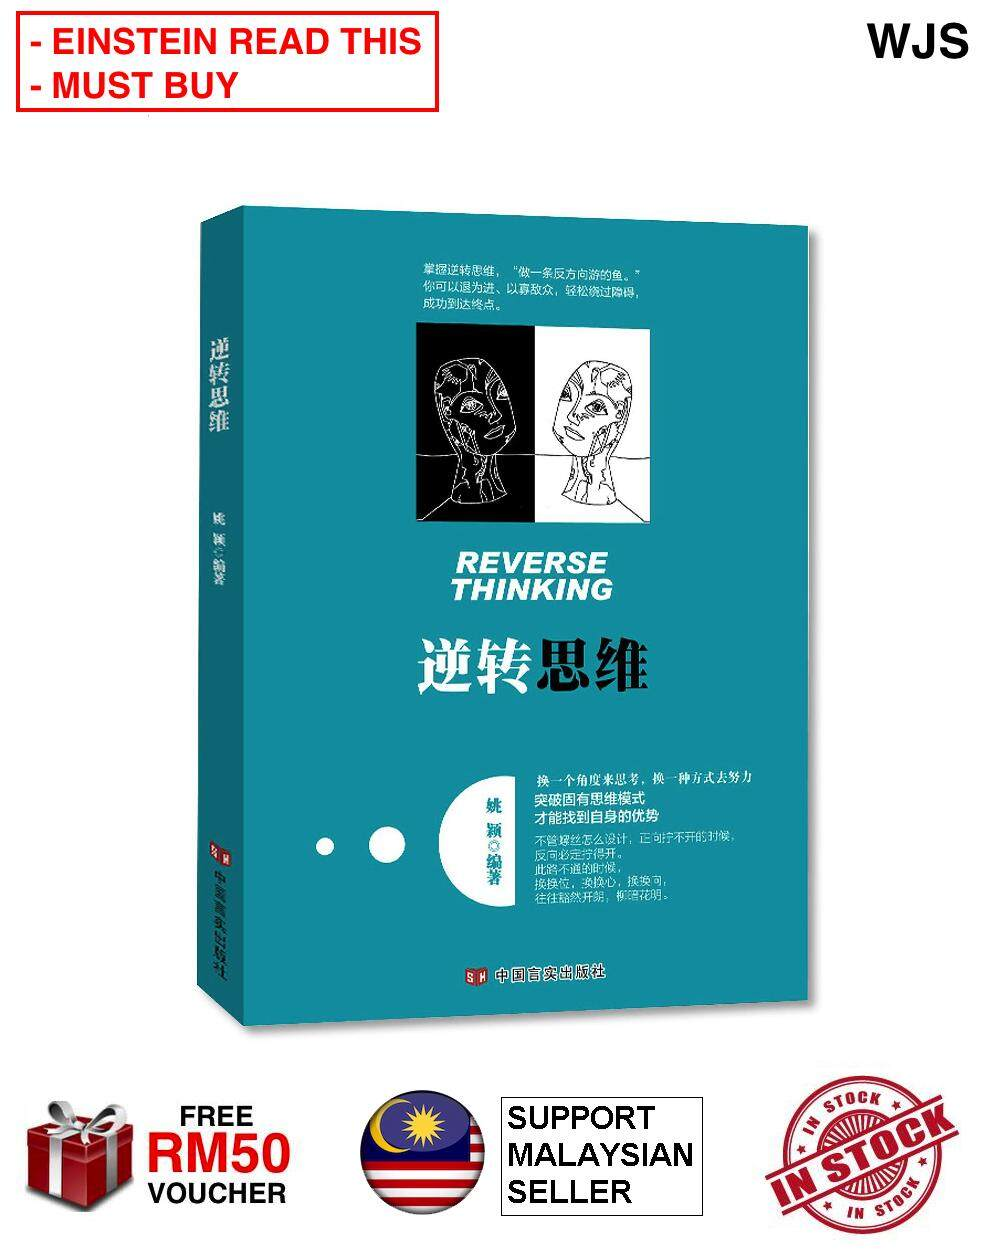 (MUST READ) WJS Reverse Thinking Book Education Book Self Help Books Einstein Read This Chinese Book [FREE RM 50 VOUCHER]